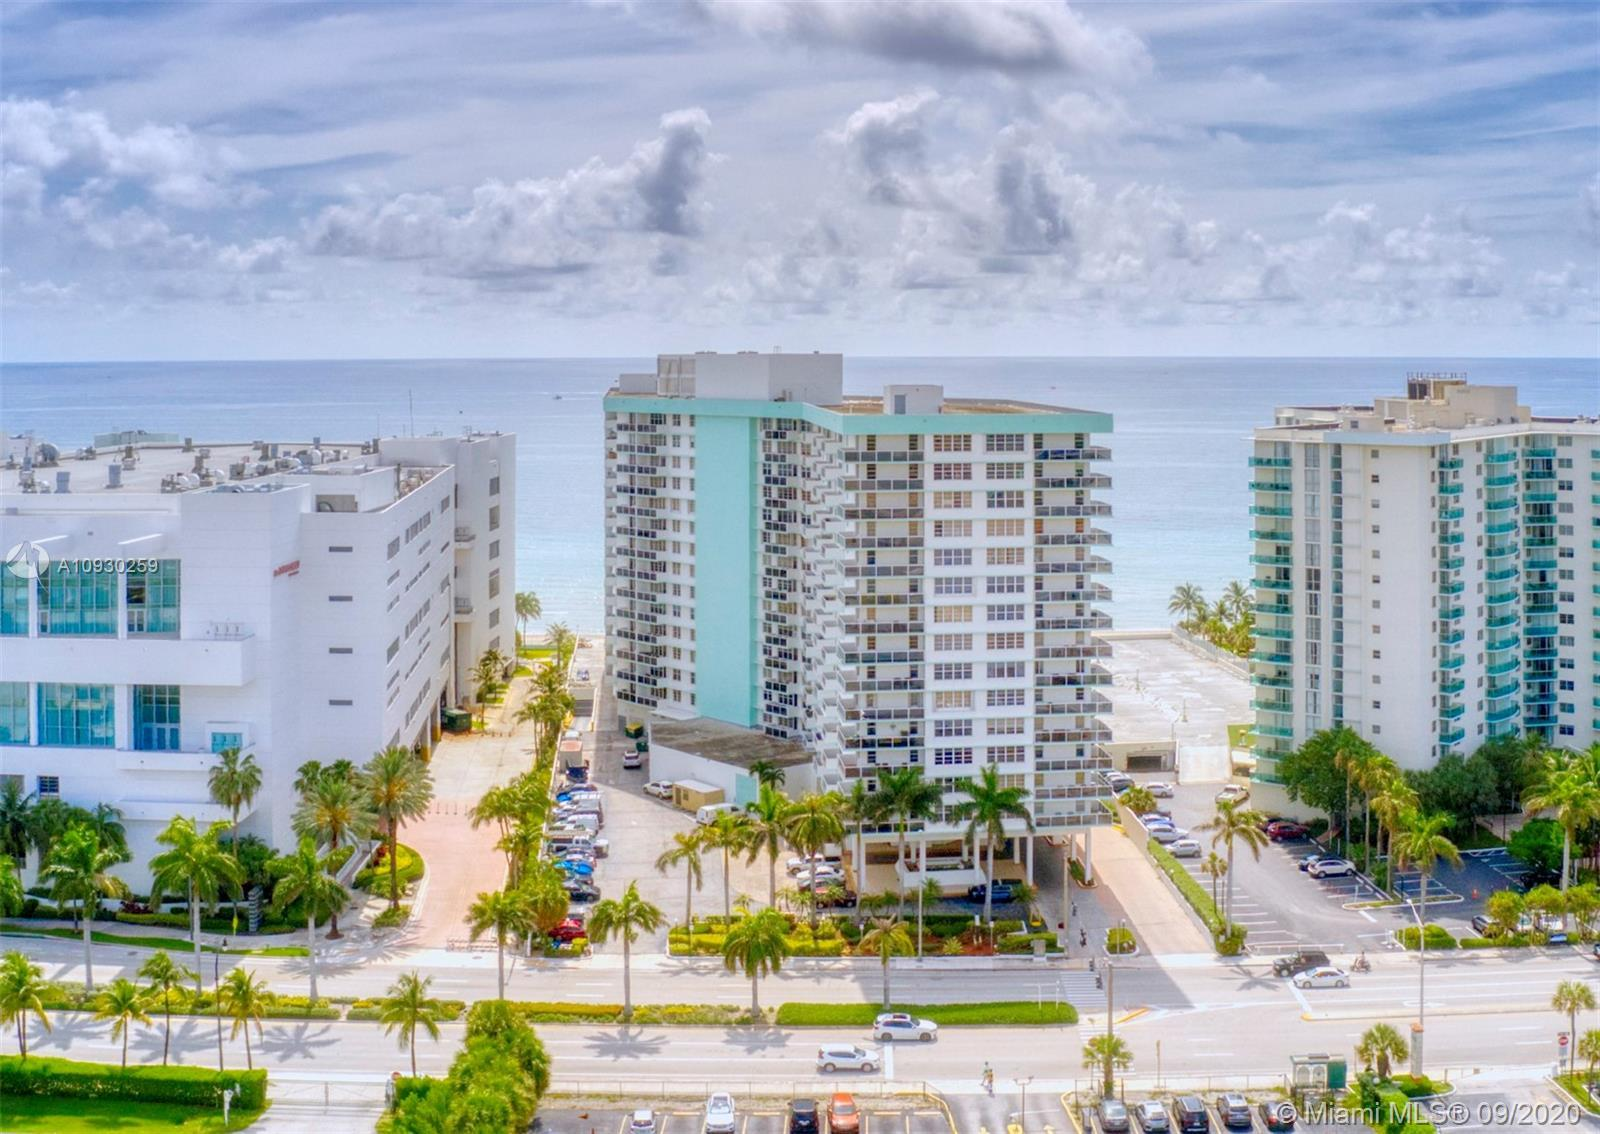 Fully furnished 1 bedroom/1.5 bathroom ocean view condo. Freshly painted, tile throughout, two Murph